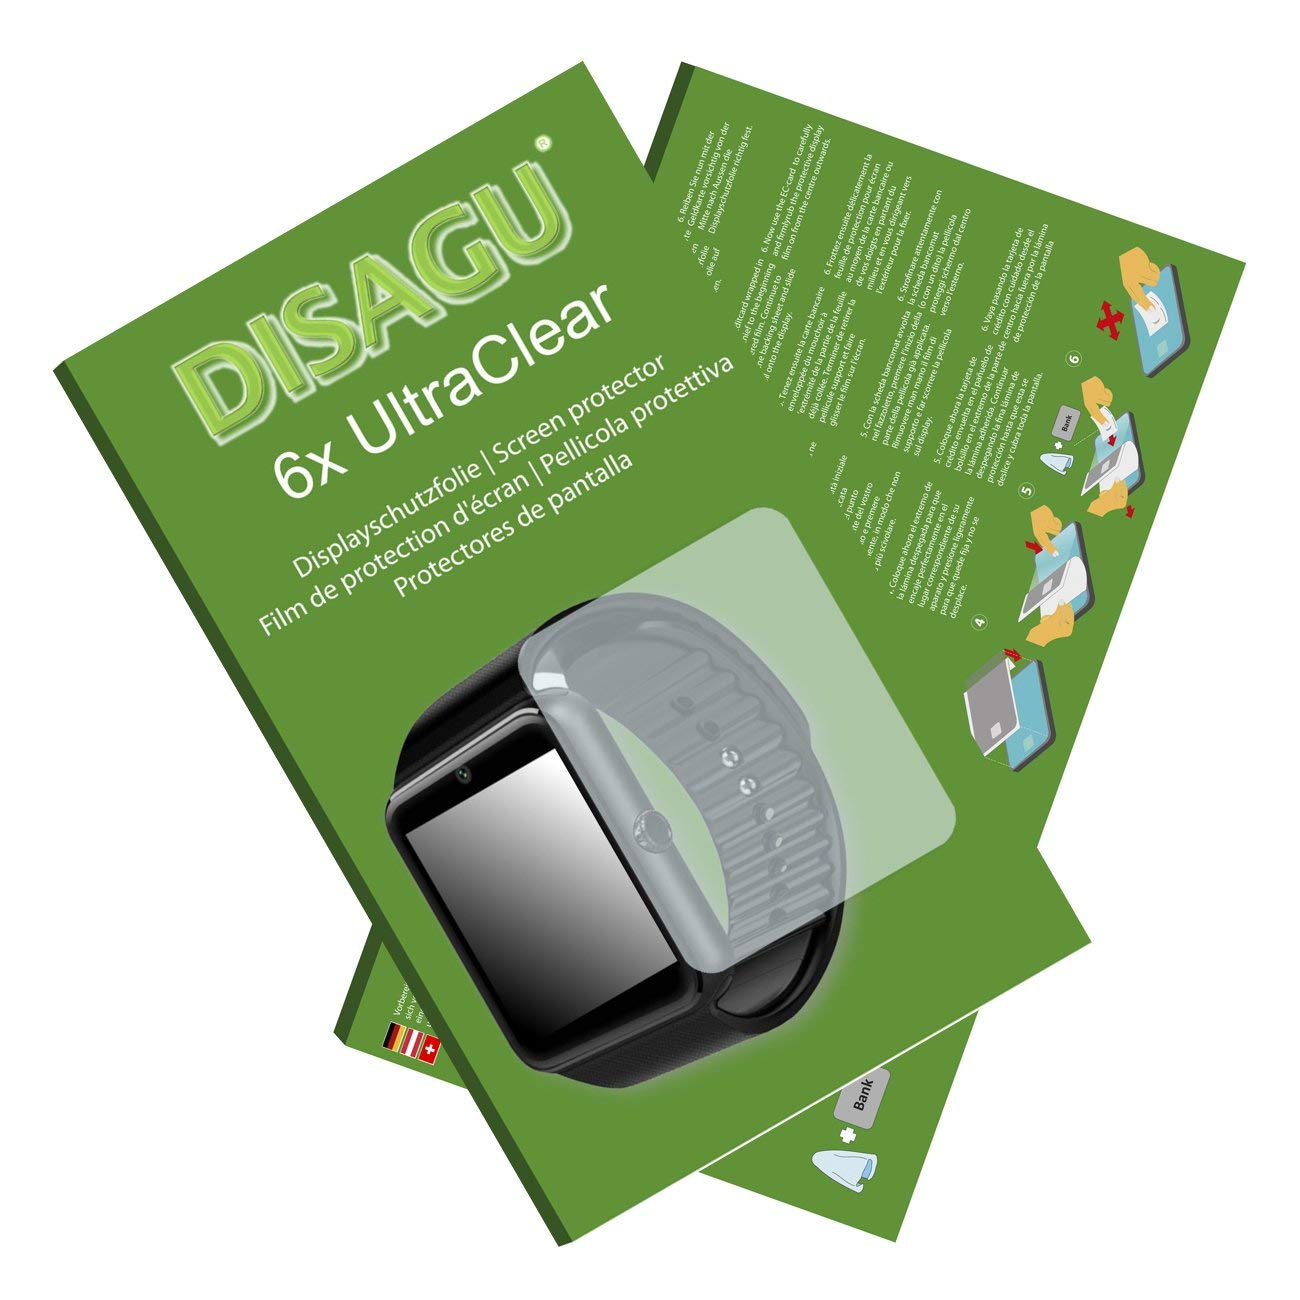 DISAGU 6x Ultra Clear Screen Protector for GSTEK Bluetooth Smart Watch (intentionally smaller than the display due to its curved surface)